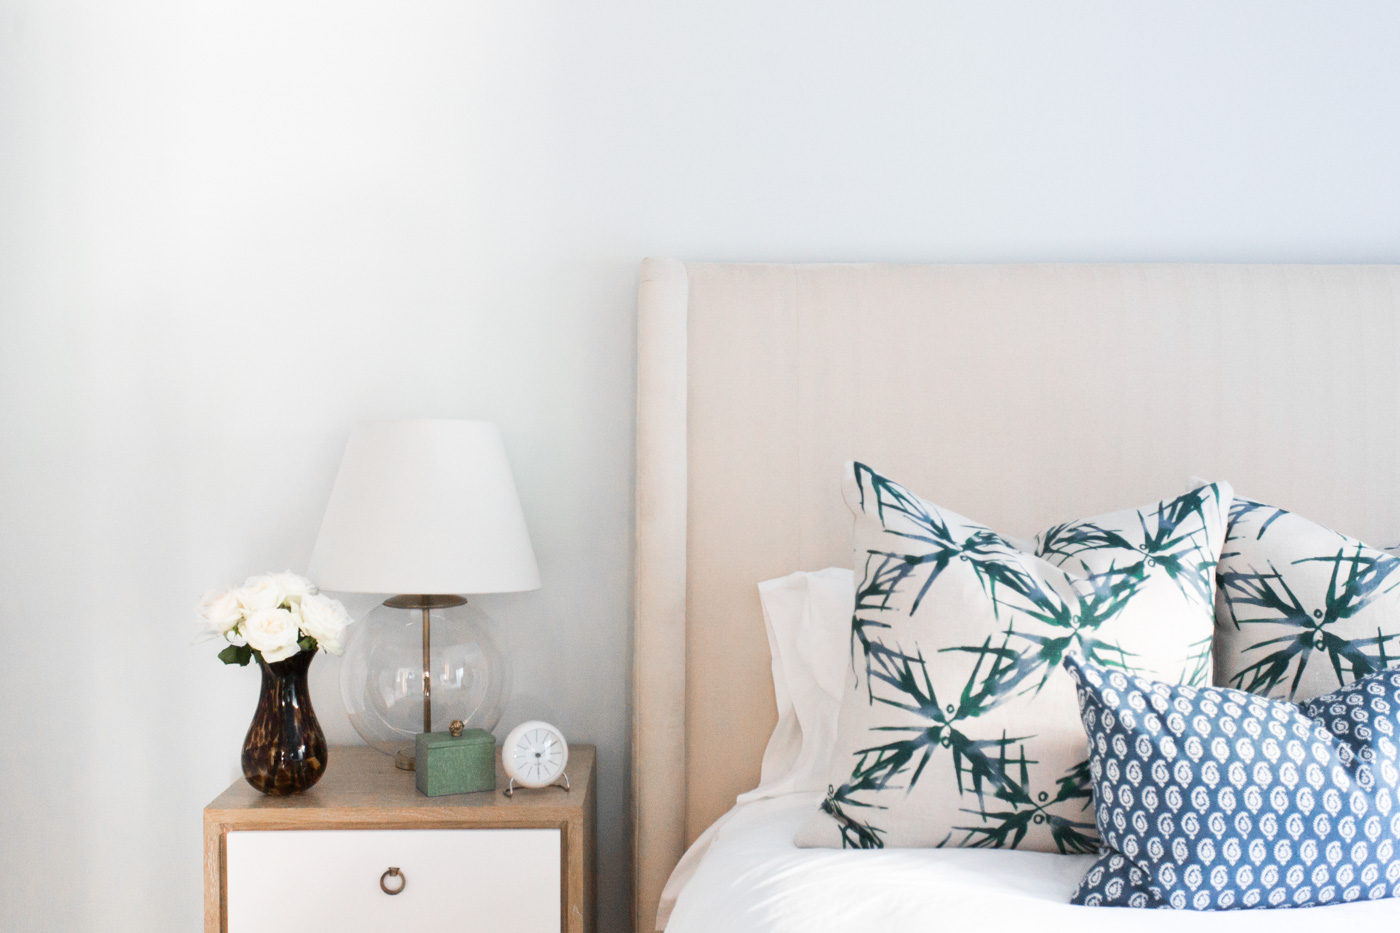 White and wooden nightstand next to white bed